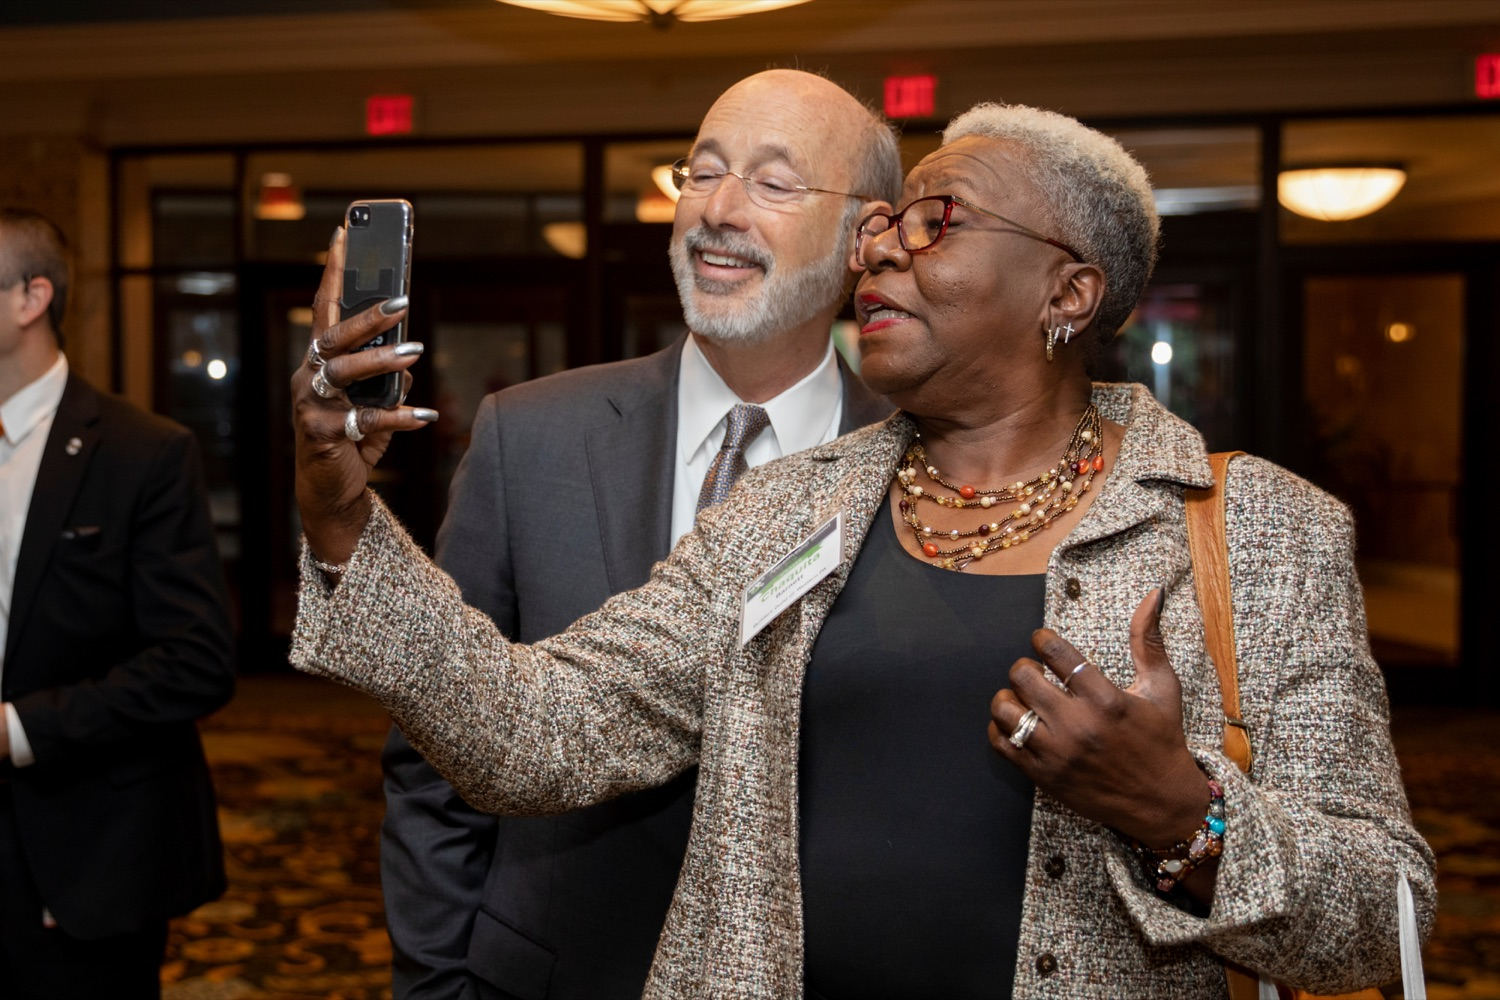 """<a href=""""http://filesource.abacast.com/commonwealthofpa/photo/17520_LandI_Apprenticeships_NK_005.JPG"""" target=""""_blank"""">⇣Download Photo<br></a>Pennsylvania Governor Tom Wolf takes a selfie with Chaquita Barnett, of Builders Guild of Western Pennsylvania, during the 2019 Pennsylvania Apprenticeship Summit at Hershey Lodge on Thursday, October 31, 2019."""